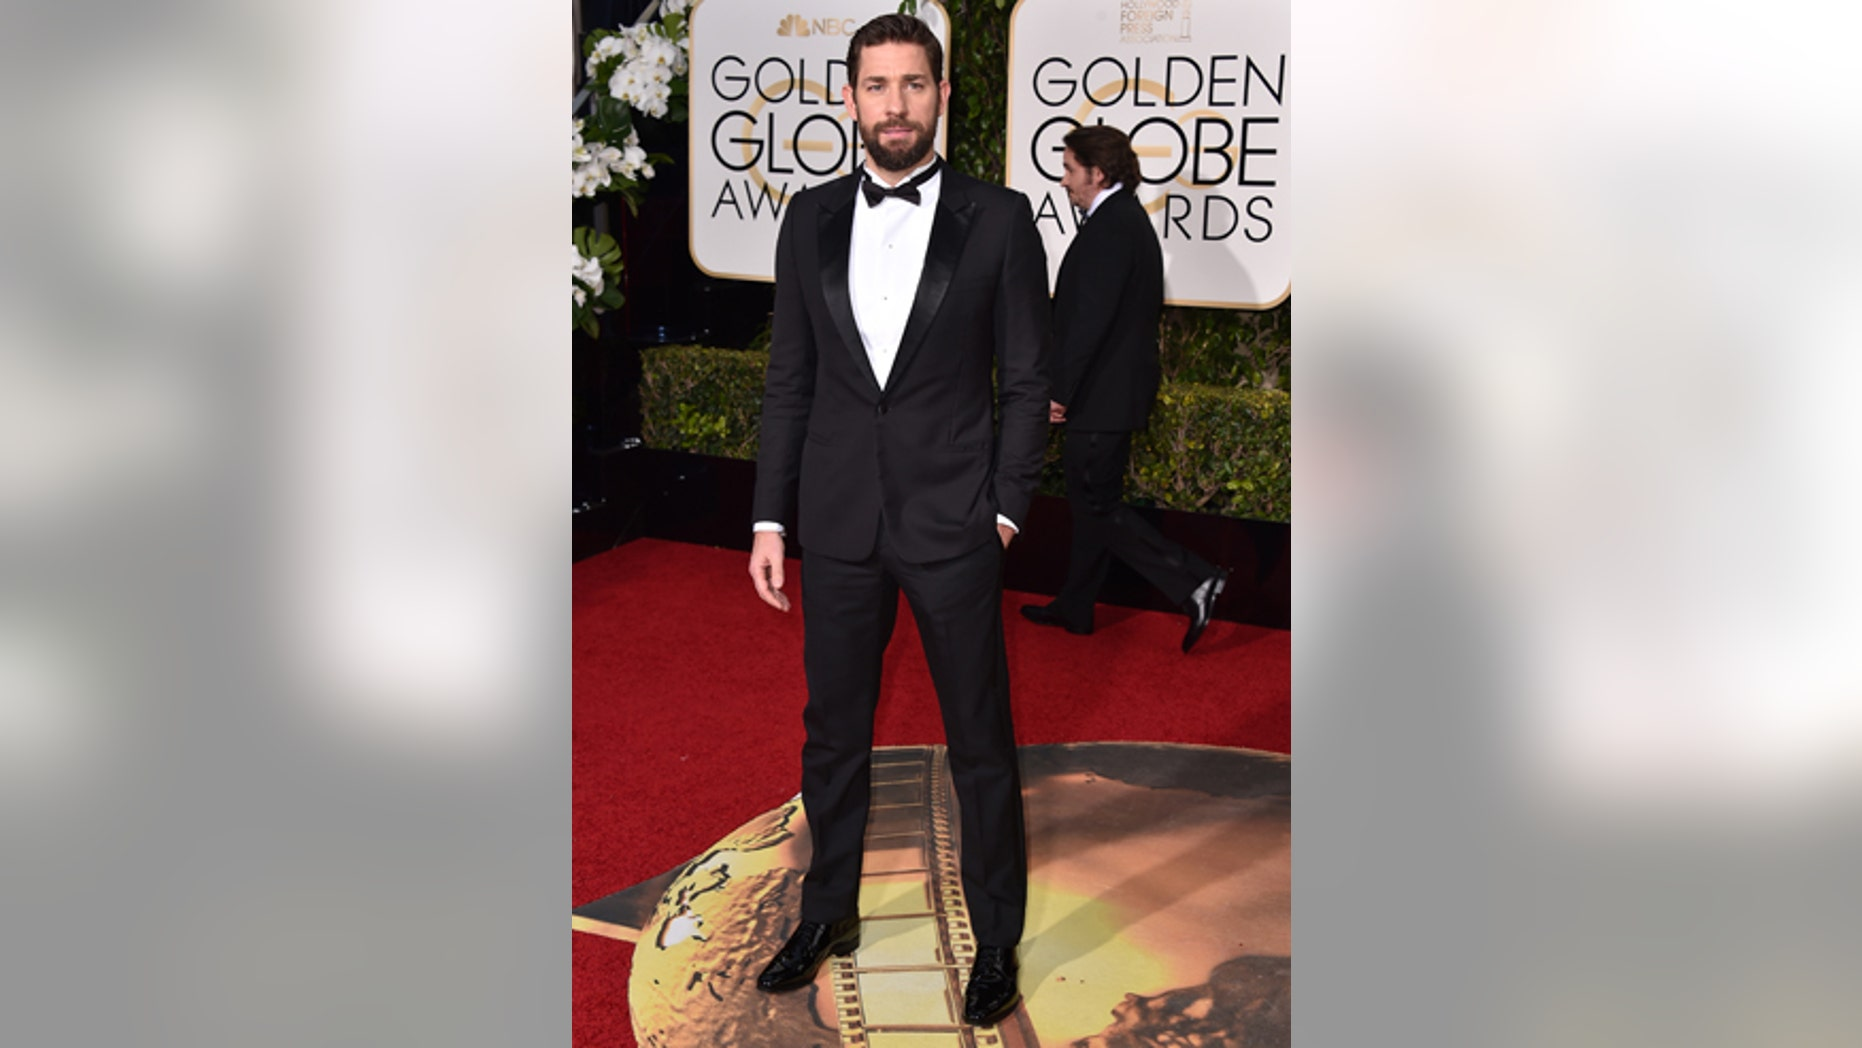 John Krasinski arrives at the 73rd annual Golden Globe Awards on Sunday, Jan. 10, 2016, at the Beverly Hilton Hotel in Beverly Hills, Calif. (Photo by Jordan Strauss/Invision/AP)